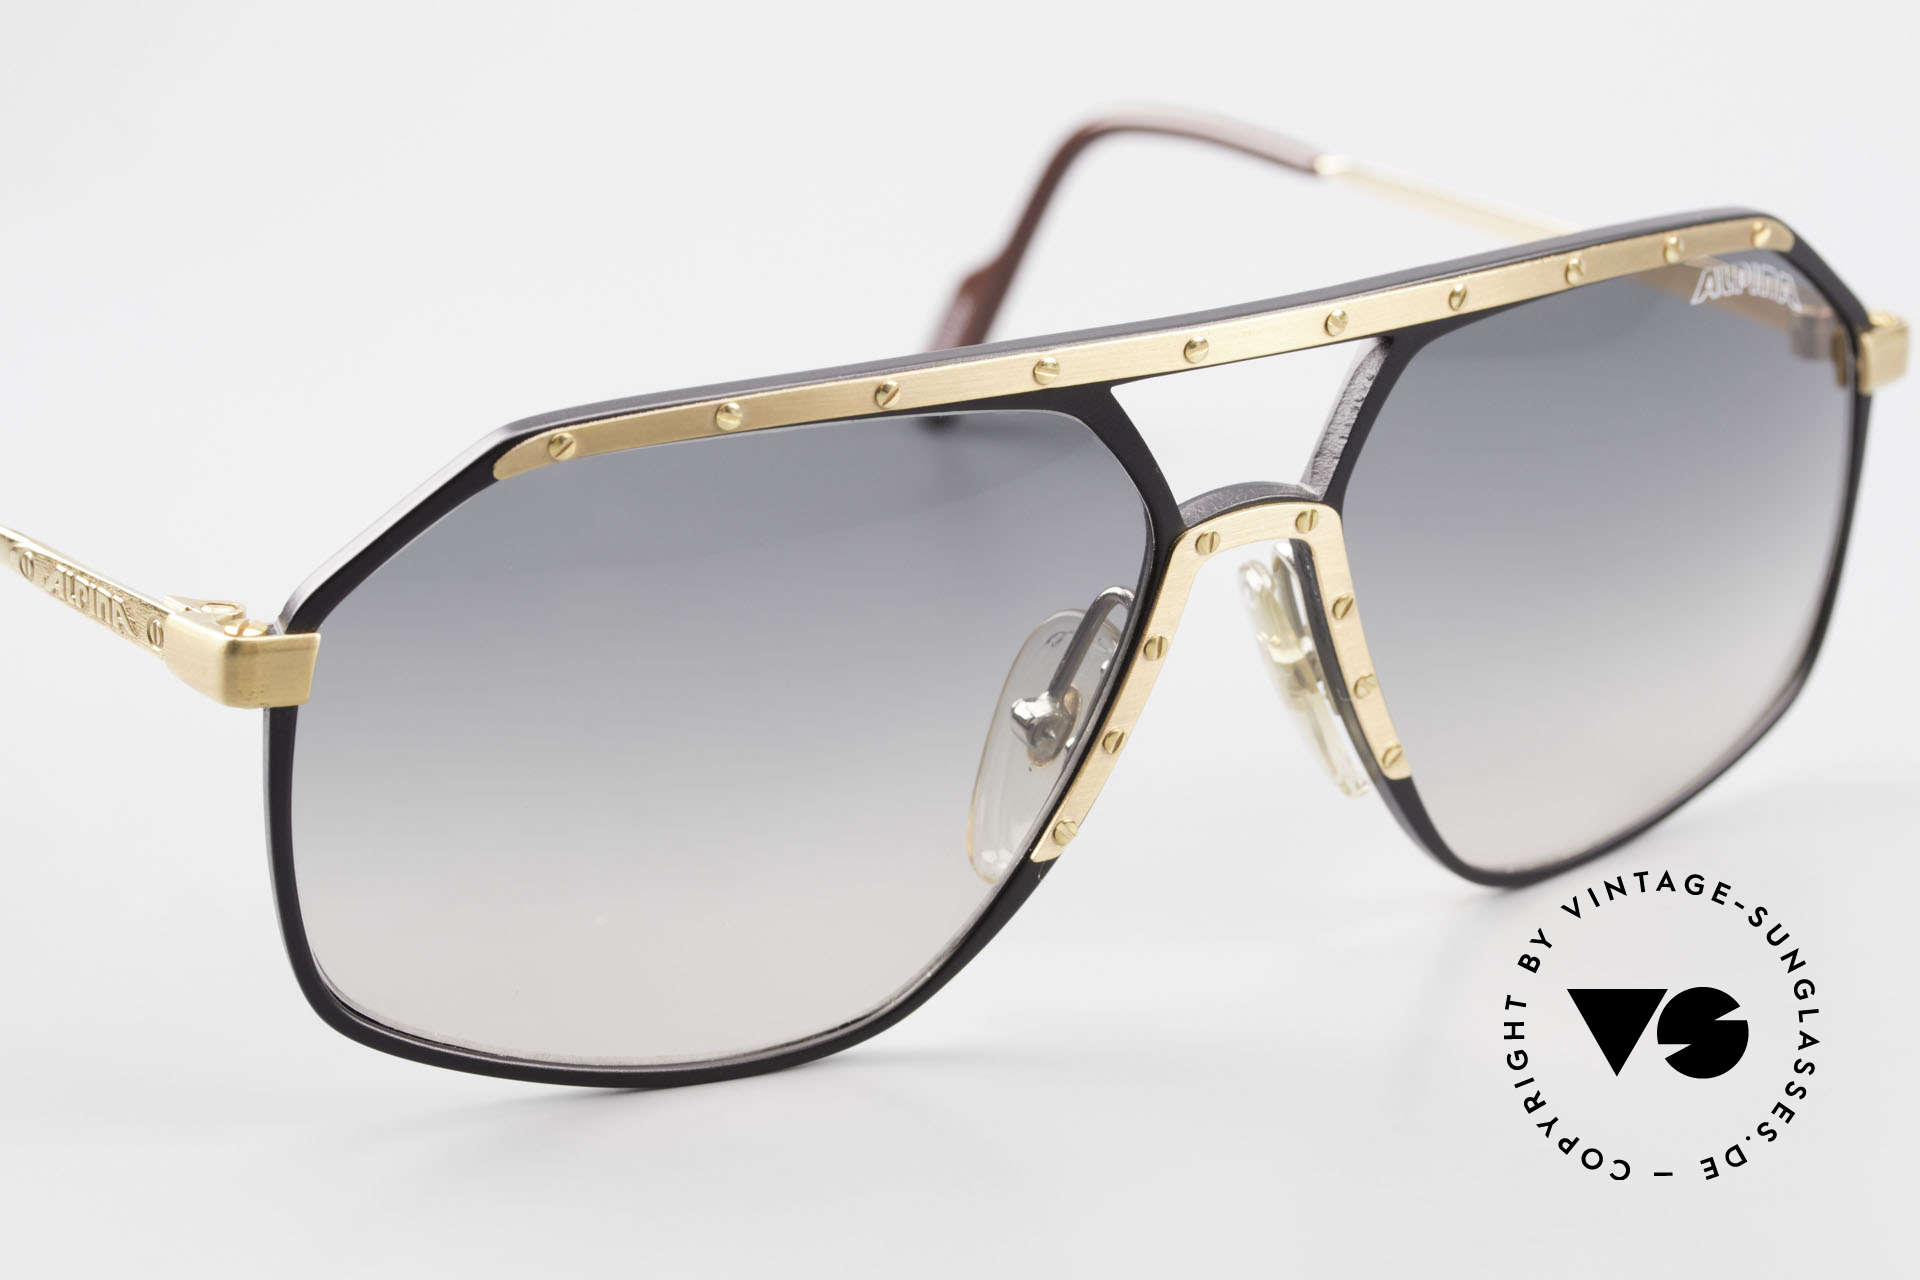 Alpina M6 True Vintage 80's Sunglasses, never worn (comes with a hard case by BVLGARI), Made for Men and Women